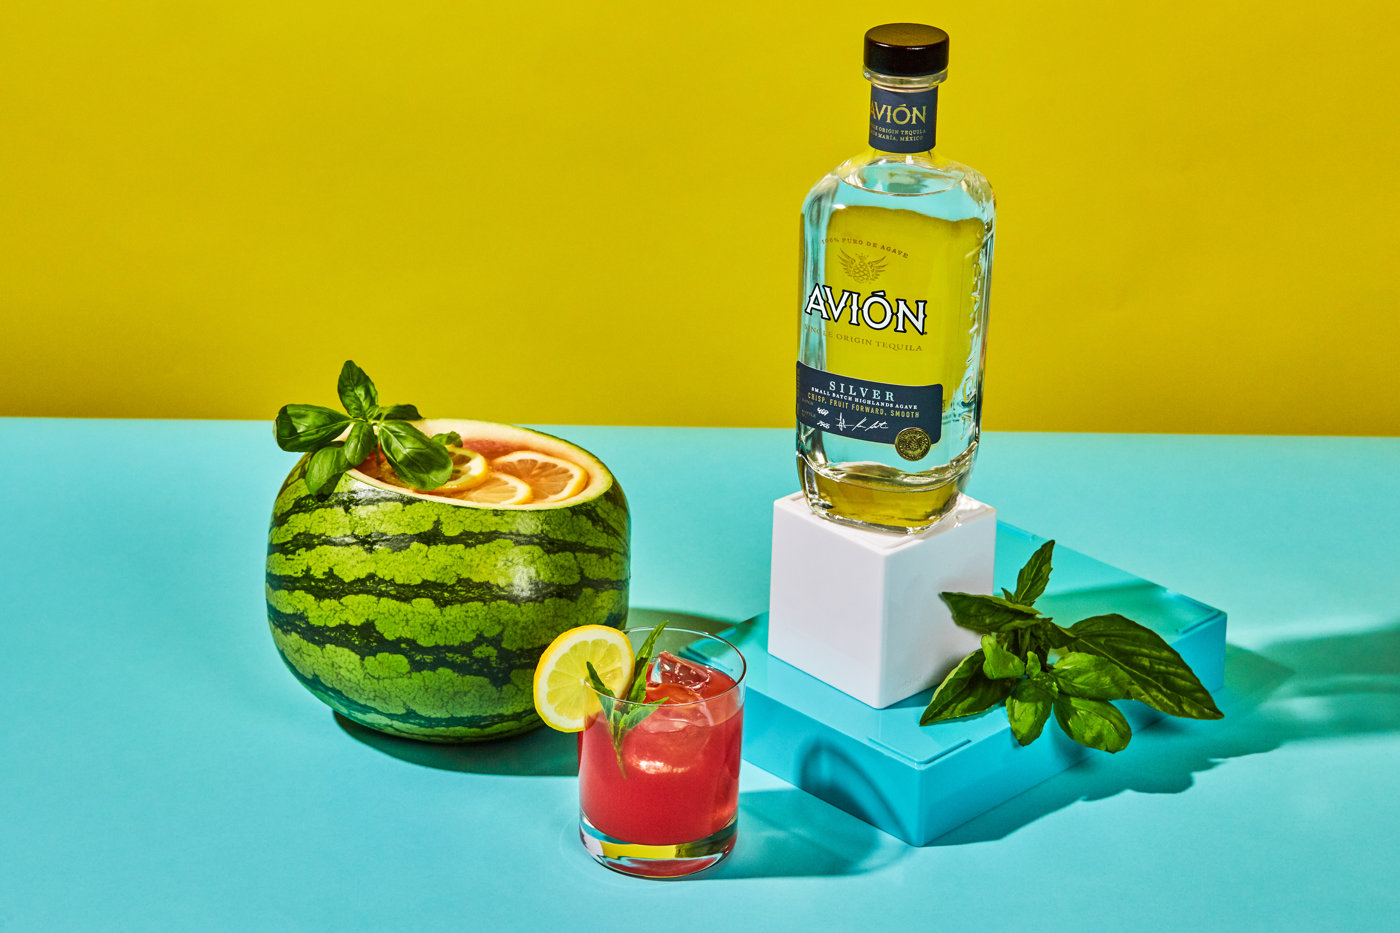 FY19_Avion_Silver_CINCODEMAYO_NATIONAL_COCKTAIL_STILL_UNCROPPED_WATERMELONBASILPUNCH-2388.JPG